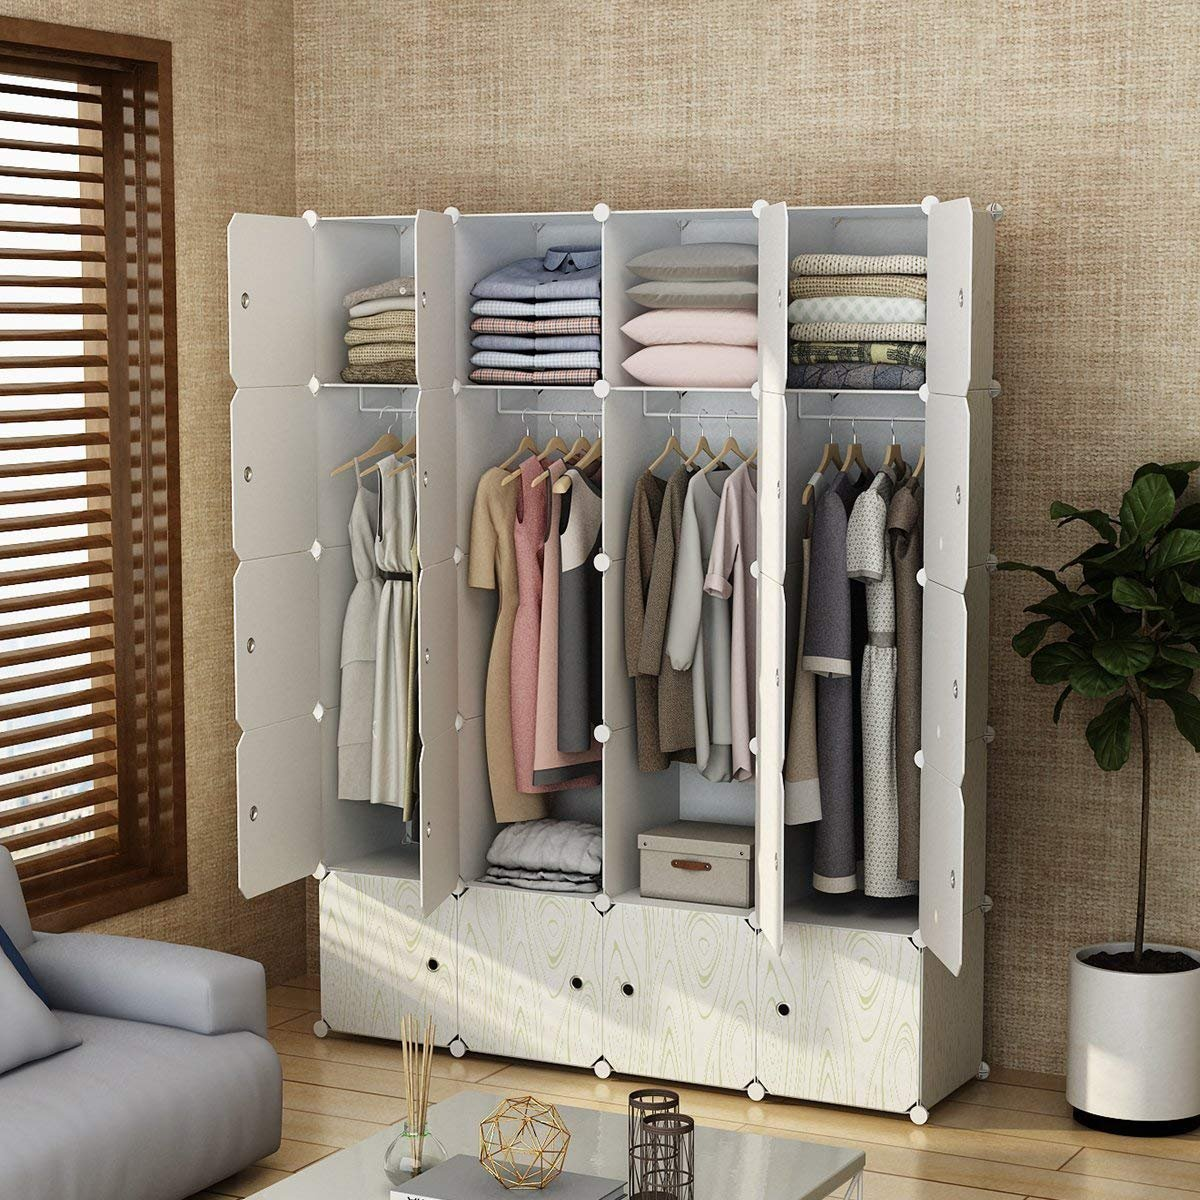 MAGINELS Closet Shelves Wardrobe Clothes Organizer Cube Storage Armoire  Cabinet Dresser for Bedroom Portable Wood Grain 8 Cube & 4 Hanging Section